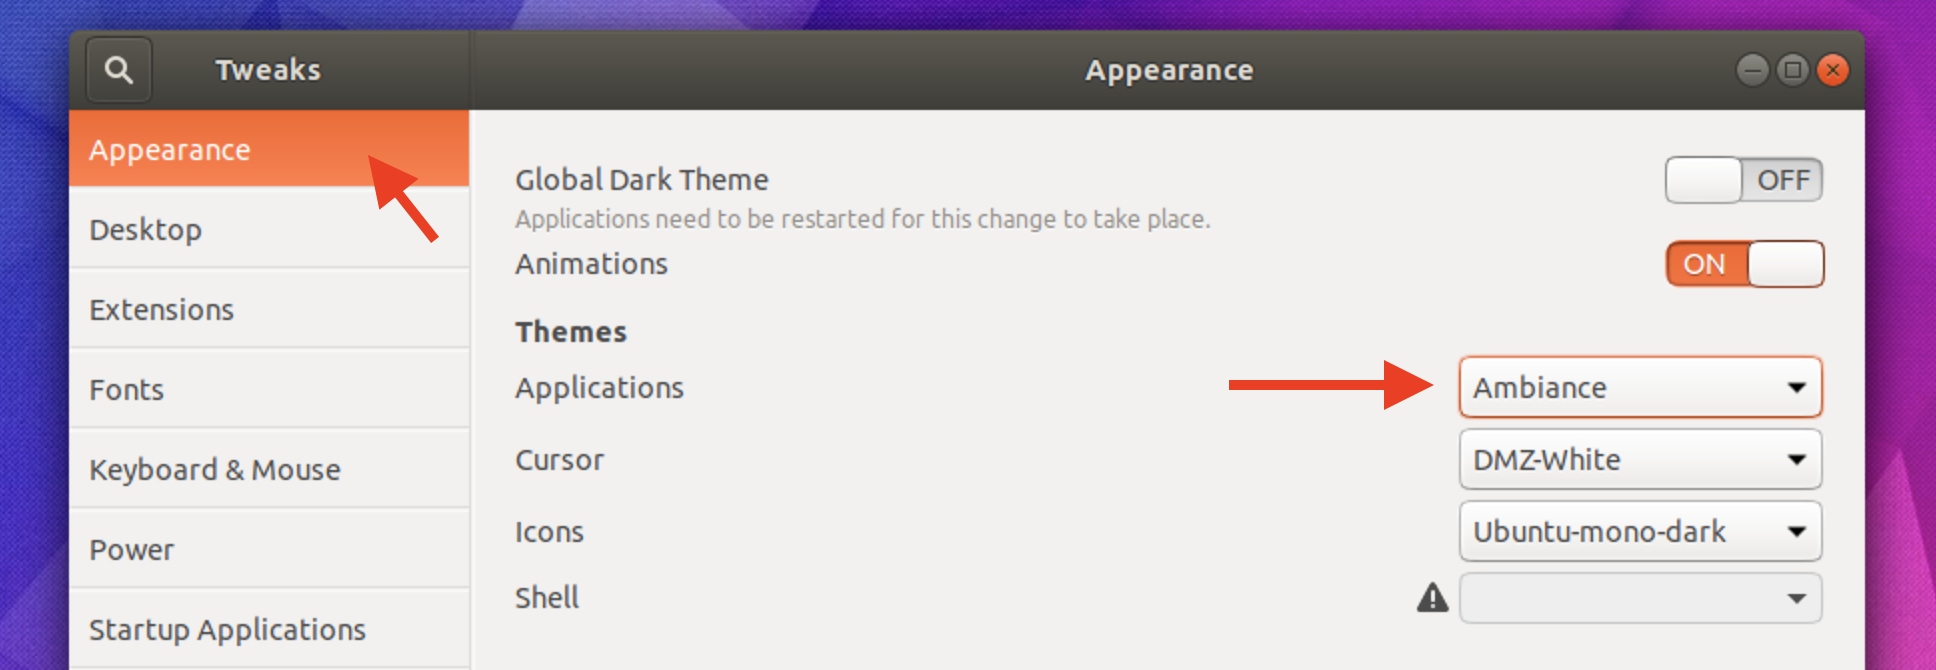 change-theme-on-ubuntu-using-gnome-tweak